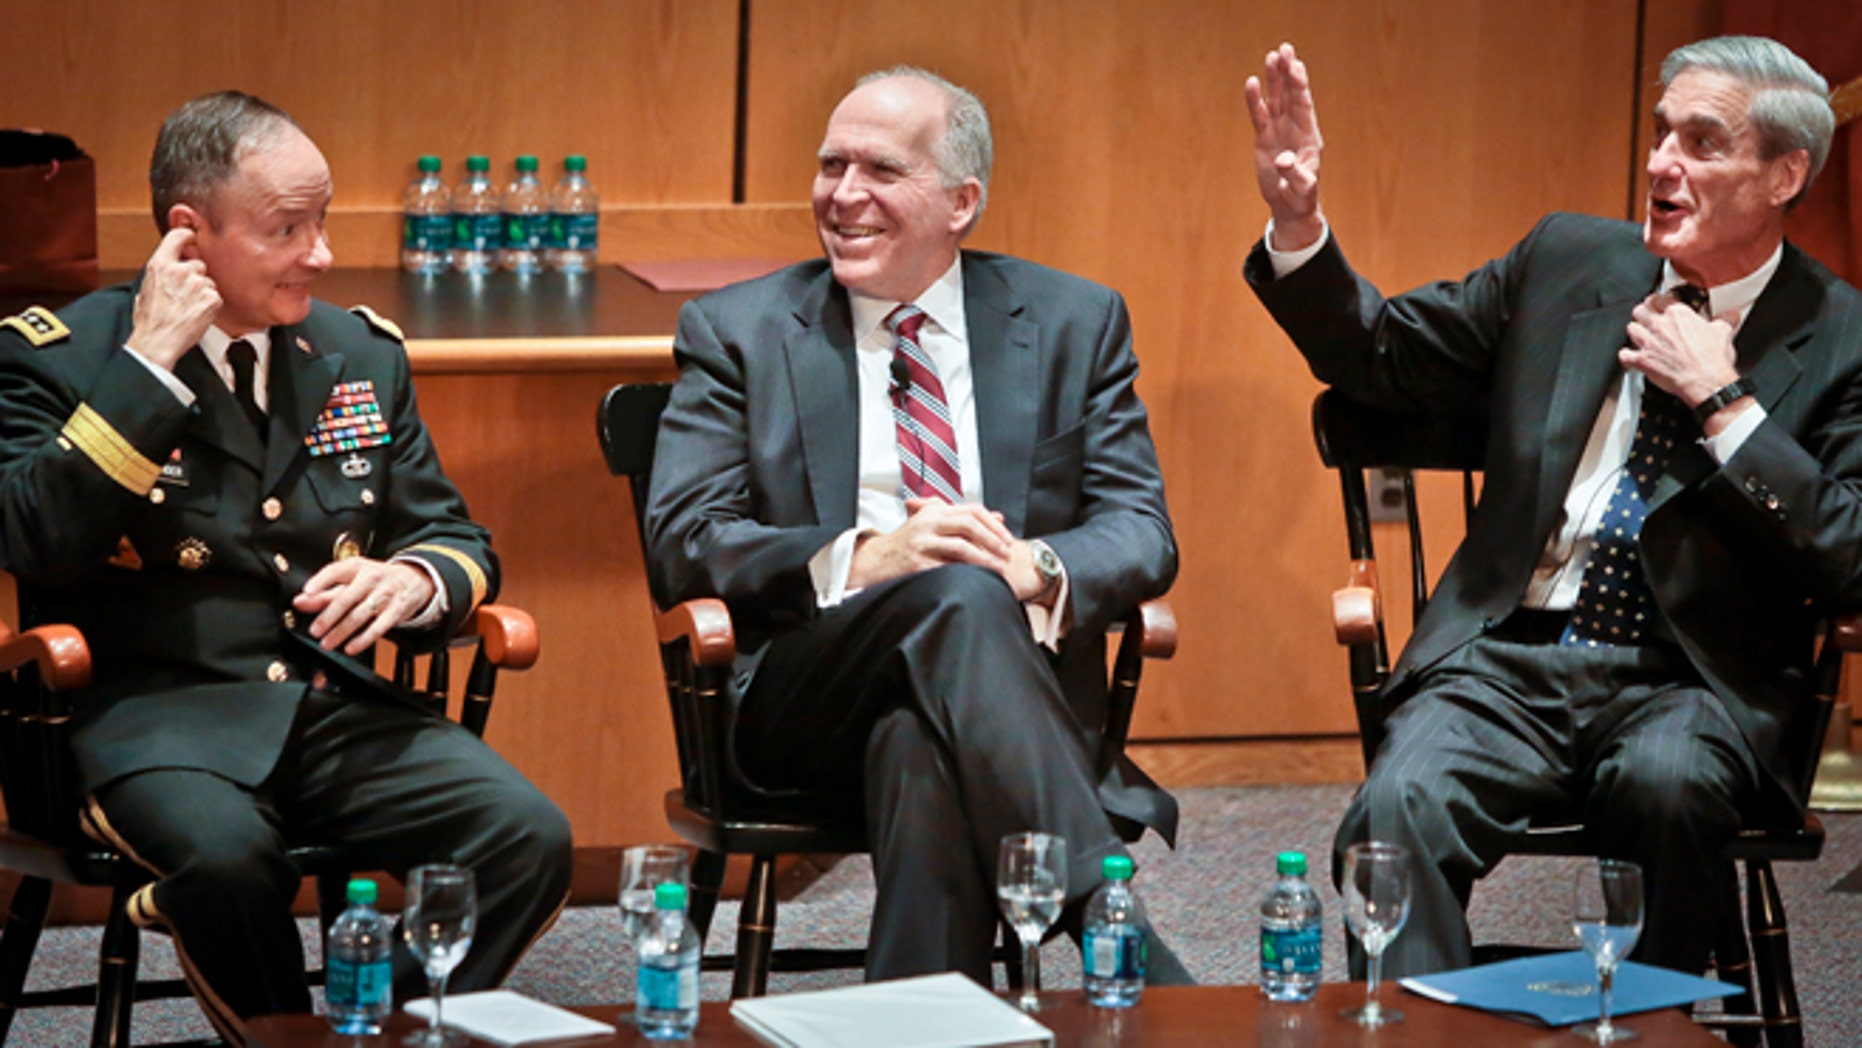 Aug 8, 2013: Director of the National Security Agency (NSA) Gen. Keith B. Alexander, left, director of the Central Intelligence Agency (CIA) John O. Brennan, center, and director of the Federal Bureau of Investigation (FBI) Robert S. Mueller, right, attend a forum during the International Conference on Cyber Security (ICCS) on at Fordham University in New York.